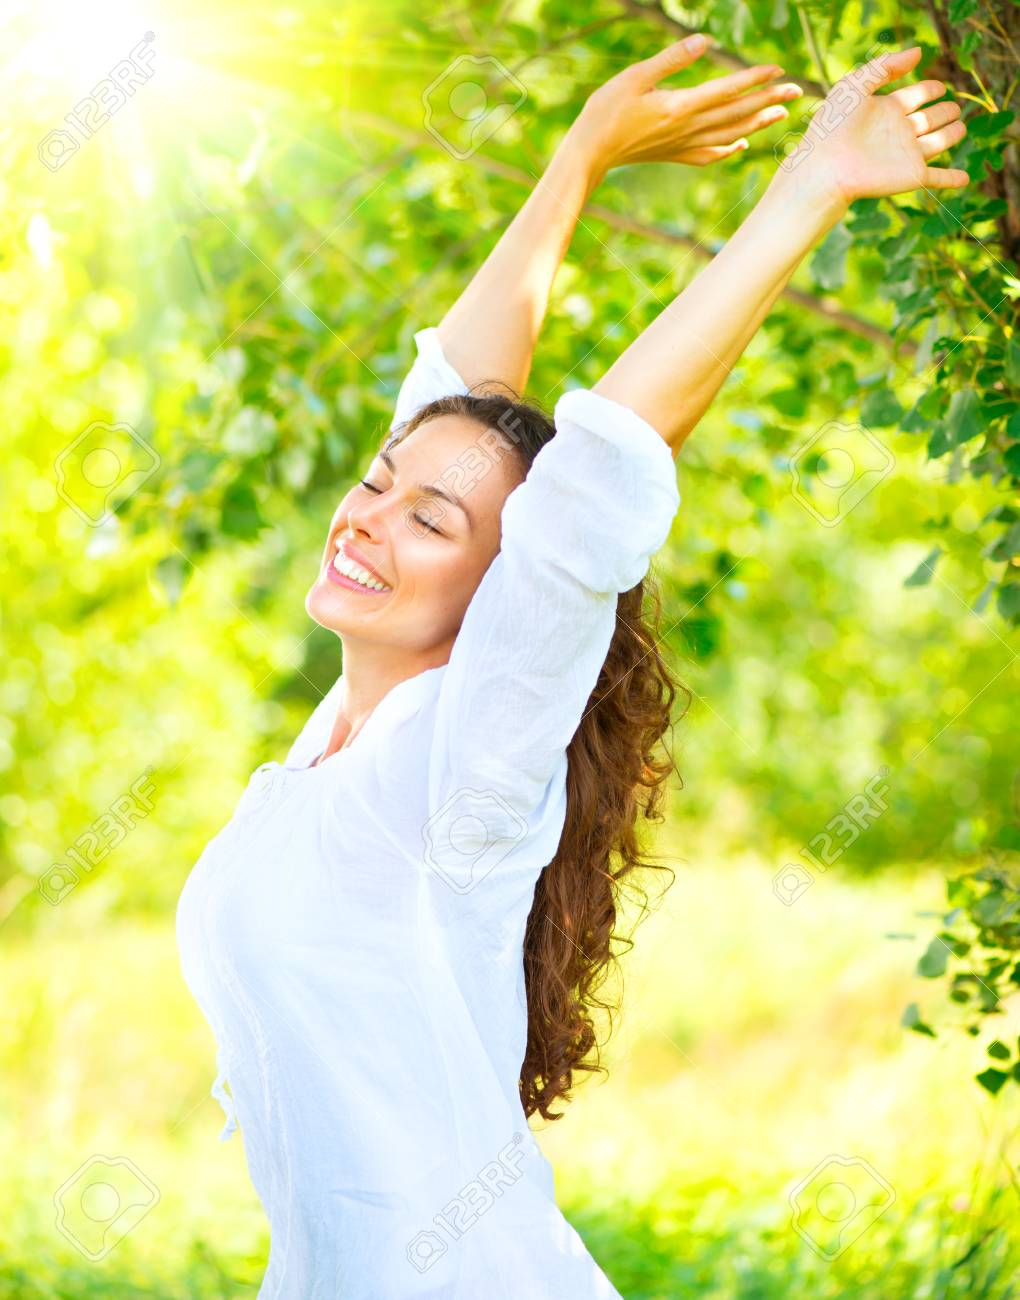 Beautiful young woman enjoying nature outdoor. Happy and smiling brunette girl with healthy smile relaxing in the summer park - 96826047